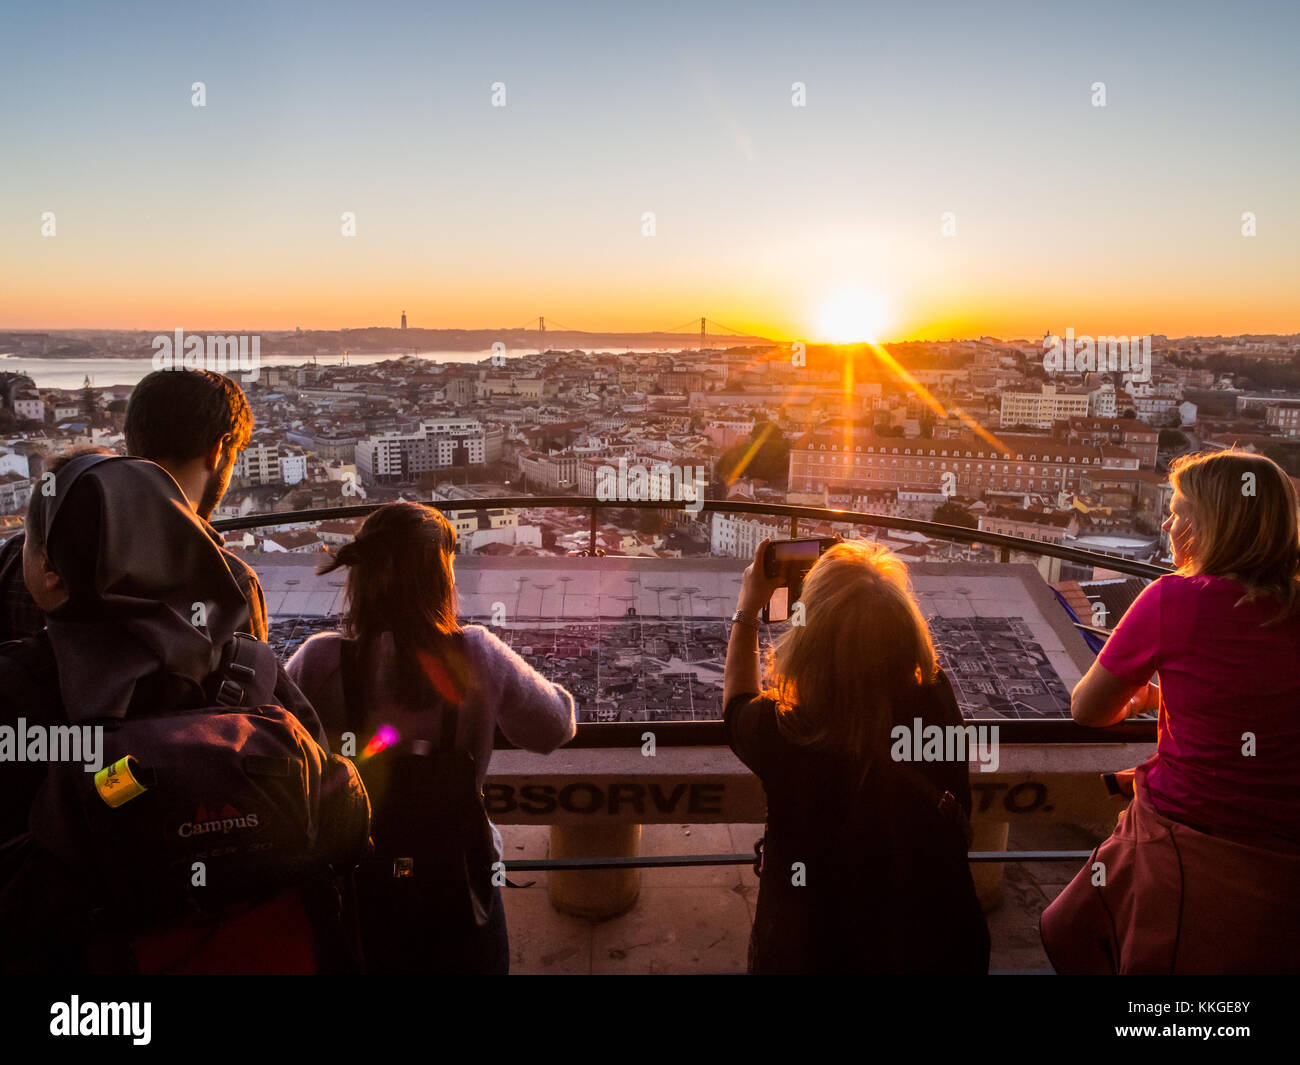 LISBON, PORTUGAL - NOVEMBER 19, 2017: Tourists at Belvedere of Our Lady of the Hill viewpoint, looking at the cityscape - Stock Image